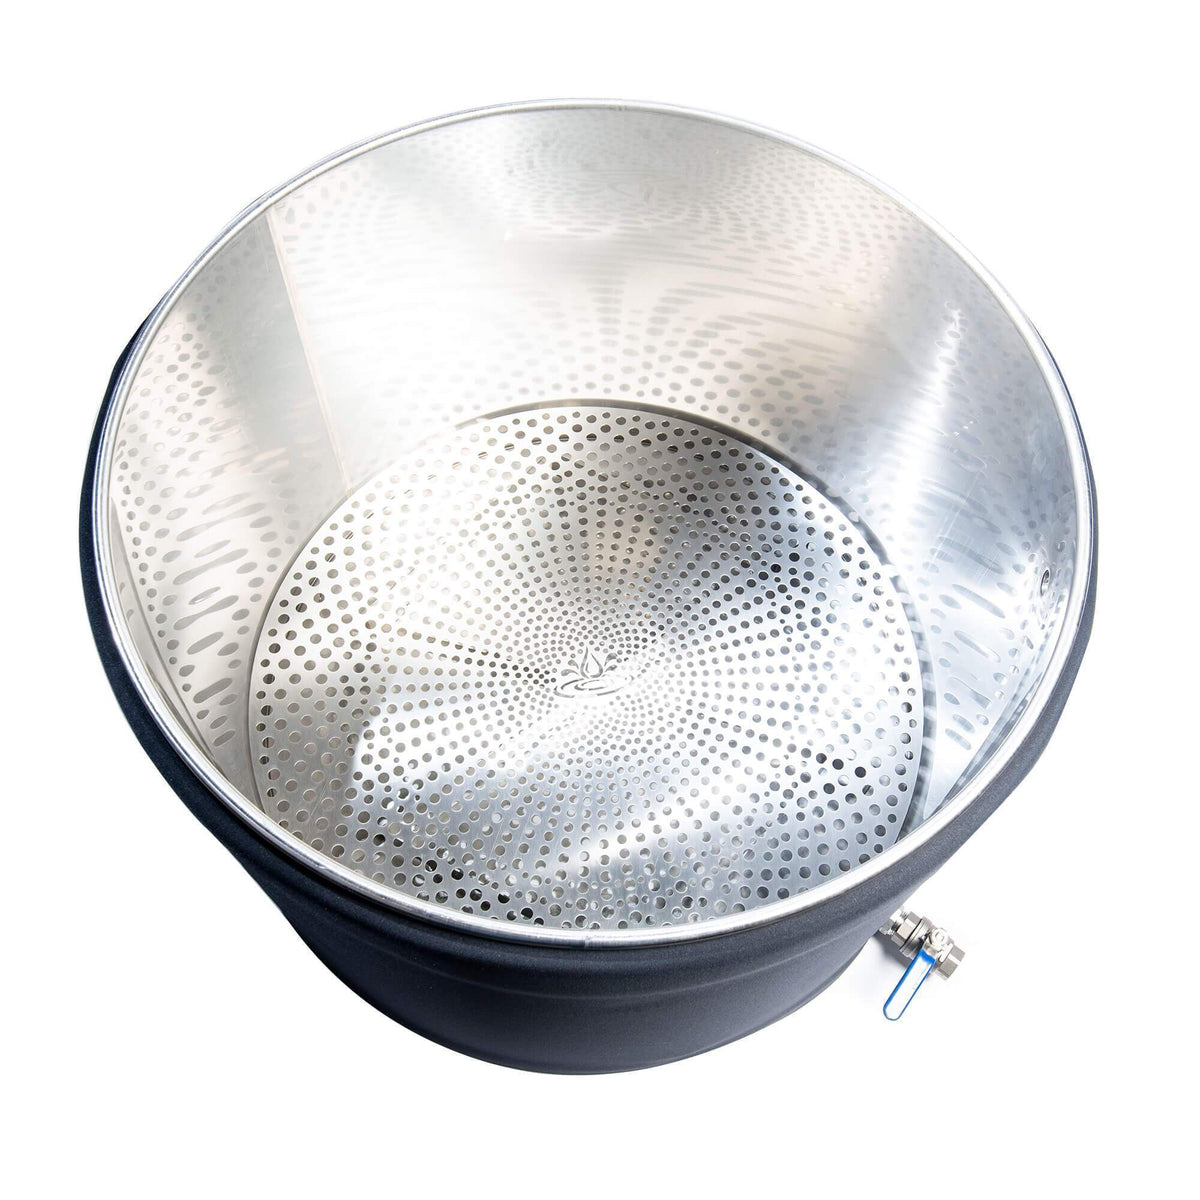 Pure Pressure Pure Pressure Bruteless Stainless Steel Bubble Hash Washing Vessels